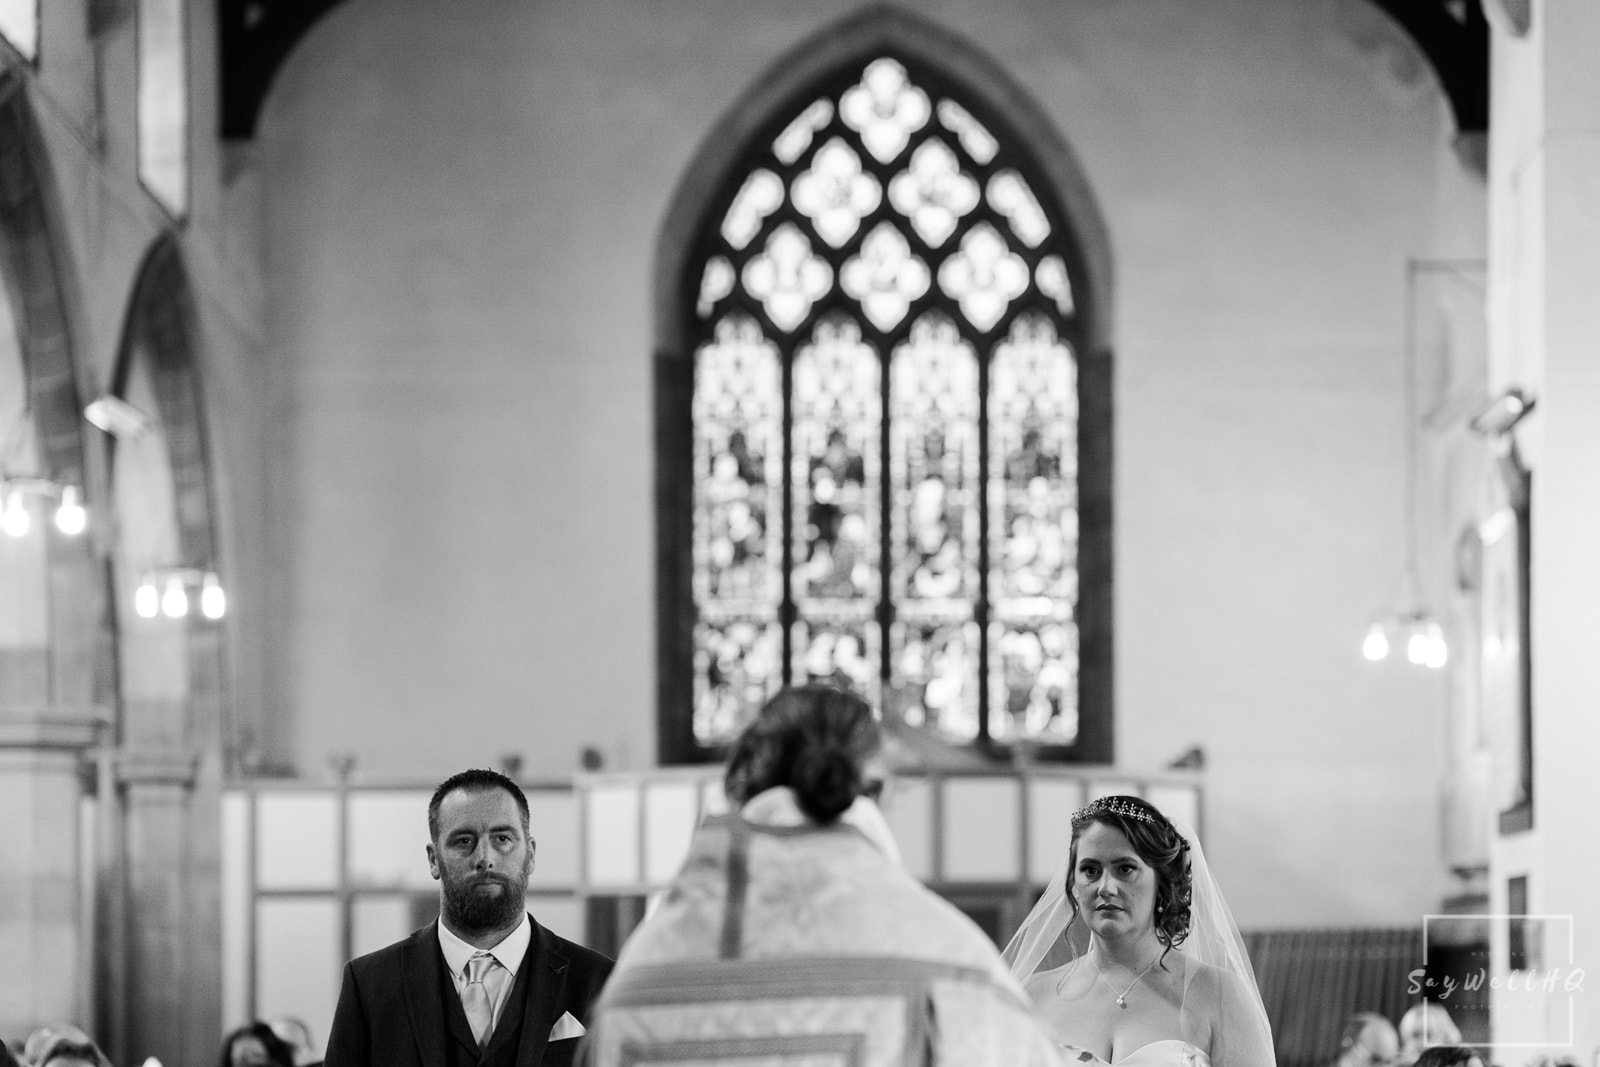 Lincoln wedding photographer -bride and groom during the wedding ceremony listen to instructions from the Vicar